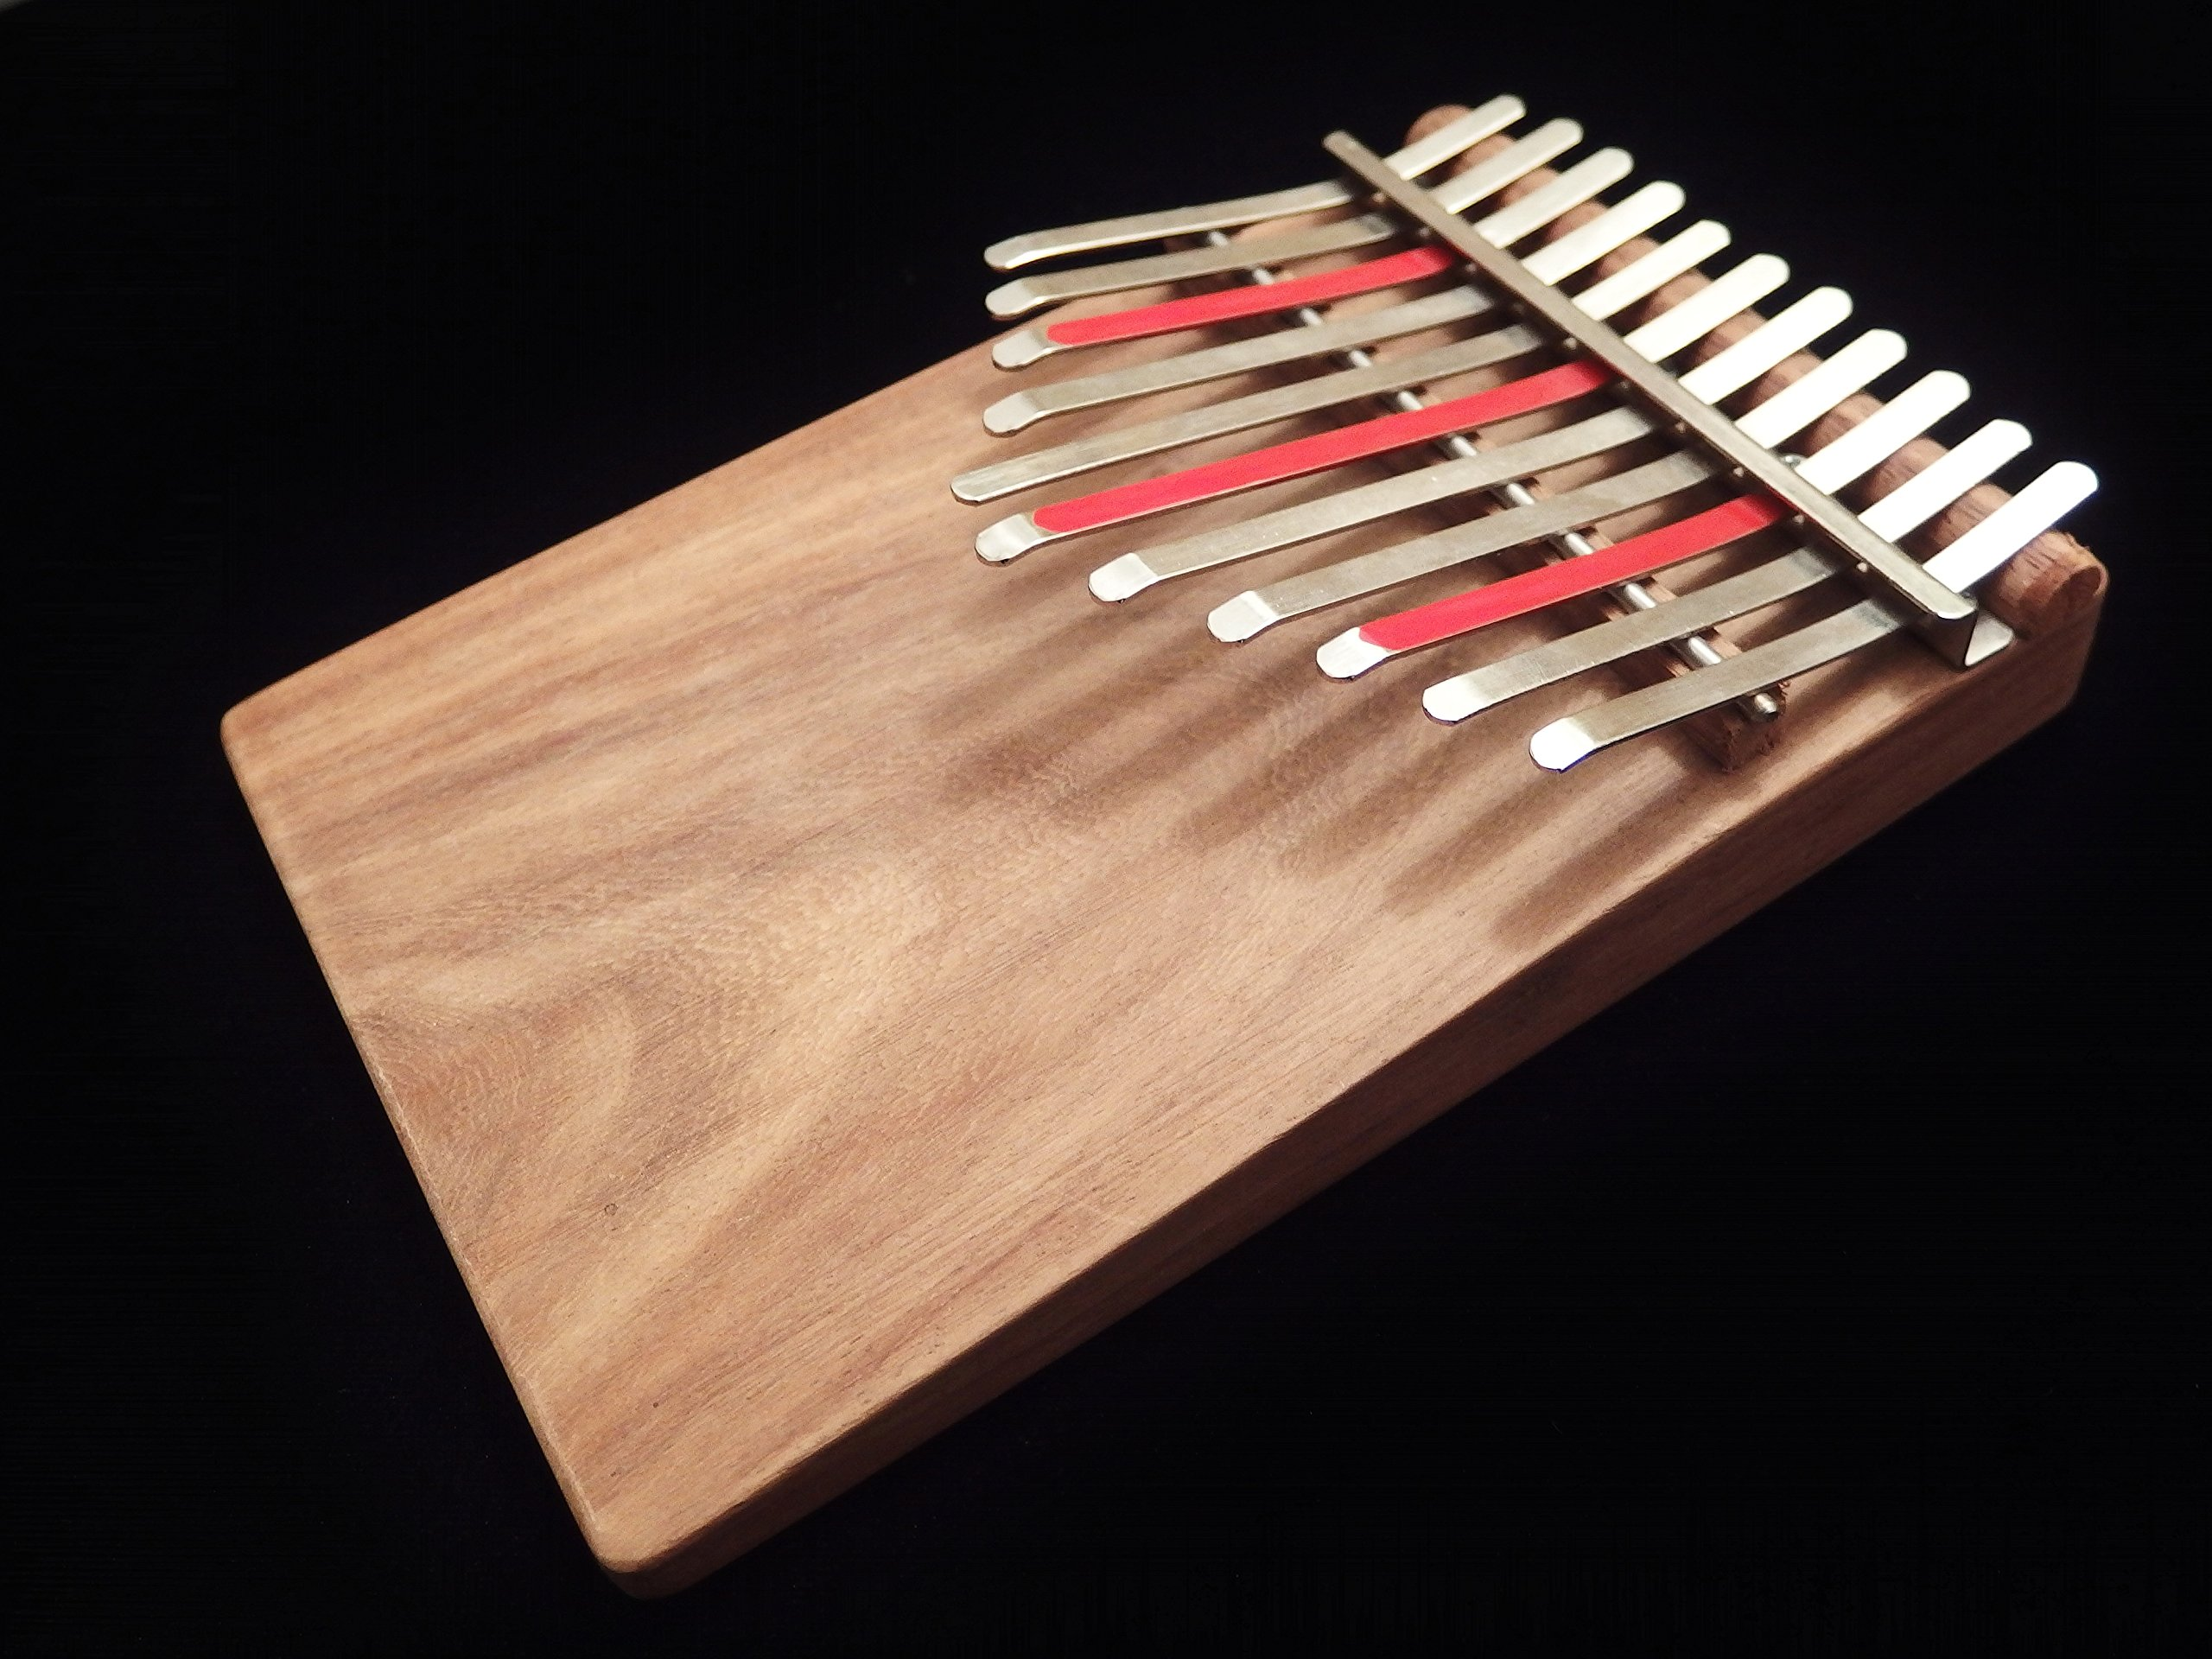 Kalimba Hugh Tracey Celeste 11 Pentatonic Sansula Thumb Piano Great sound